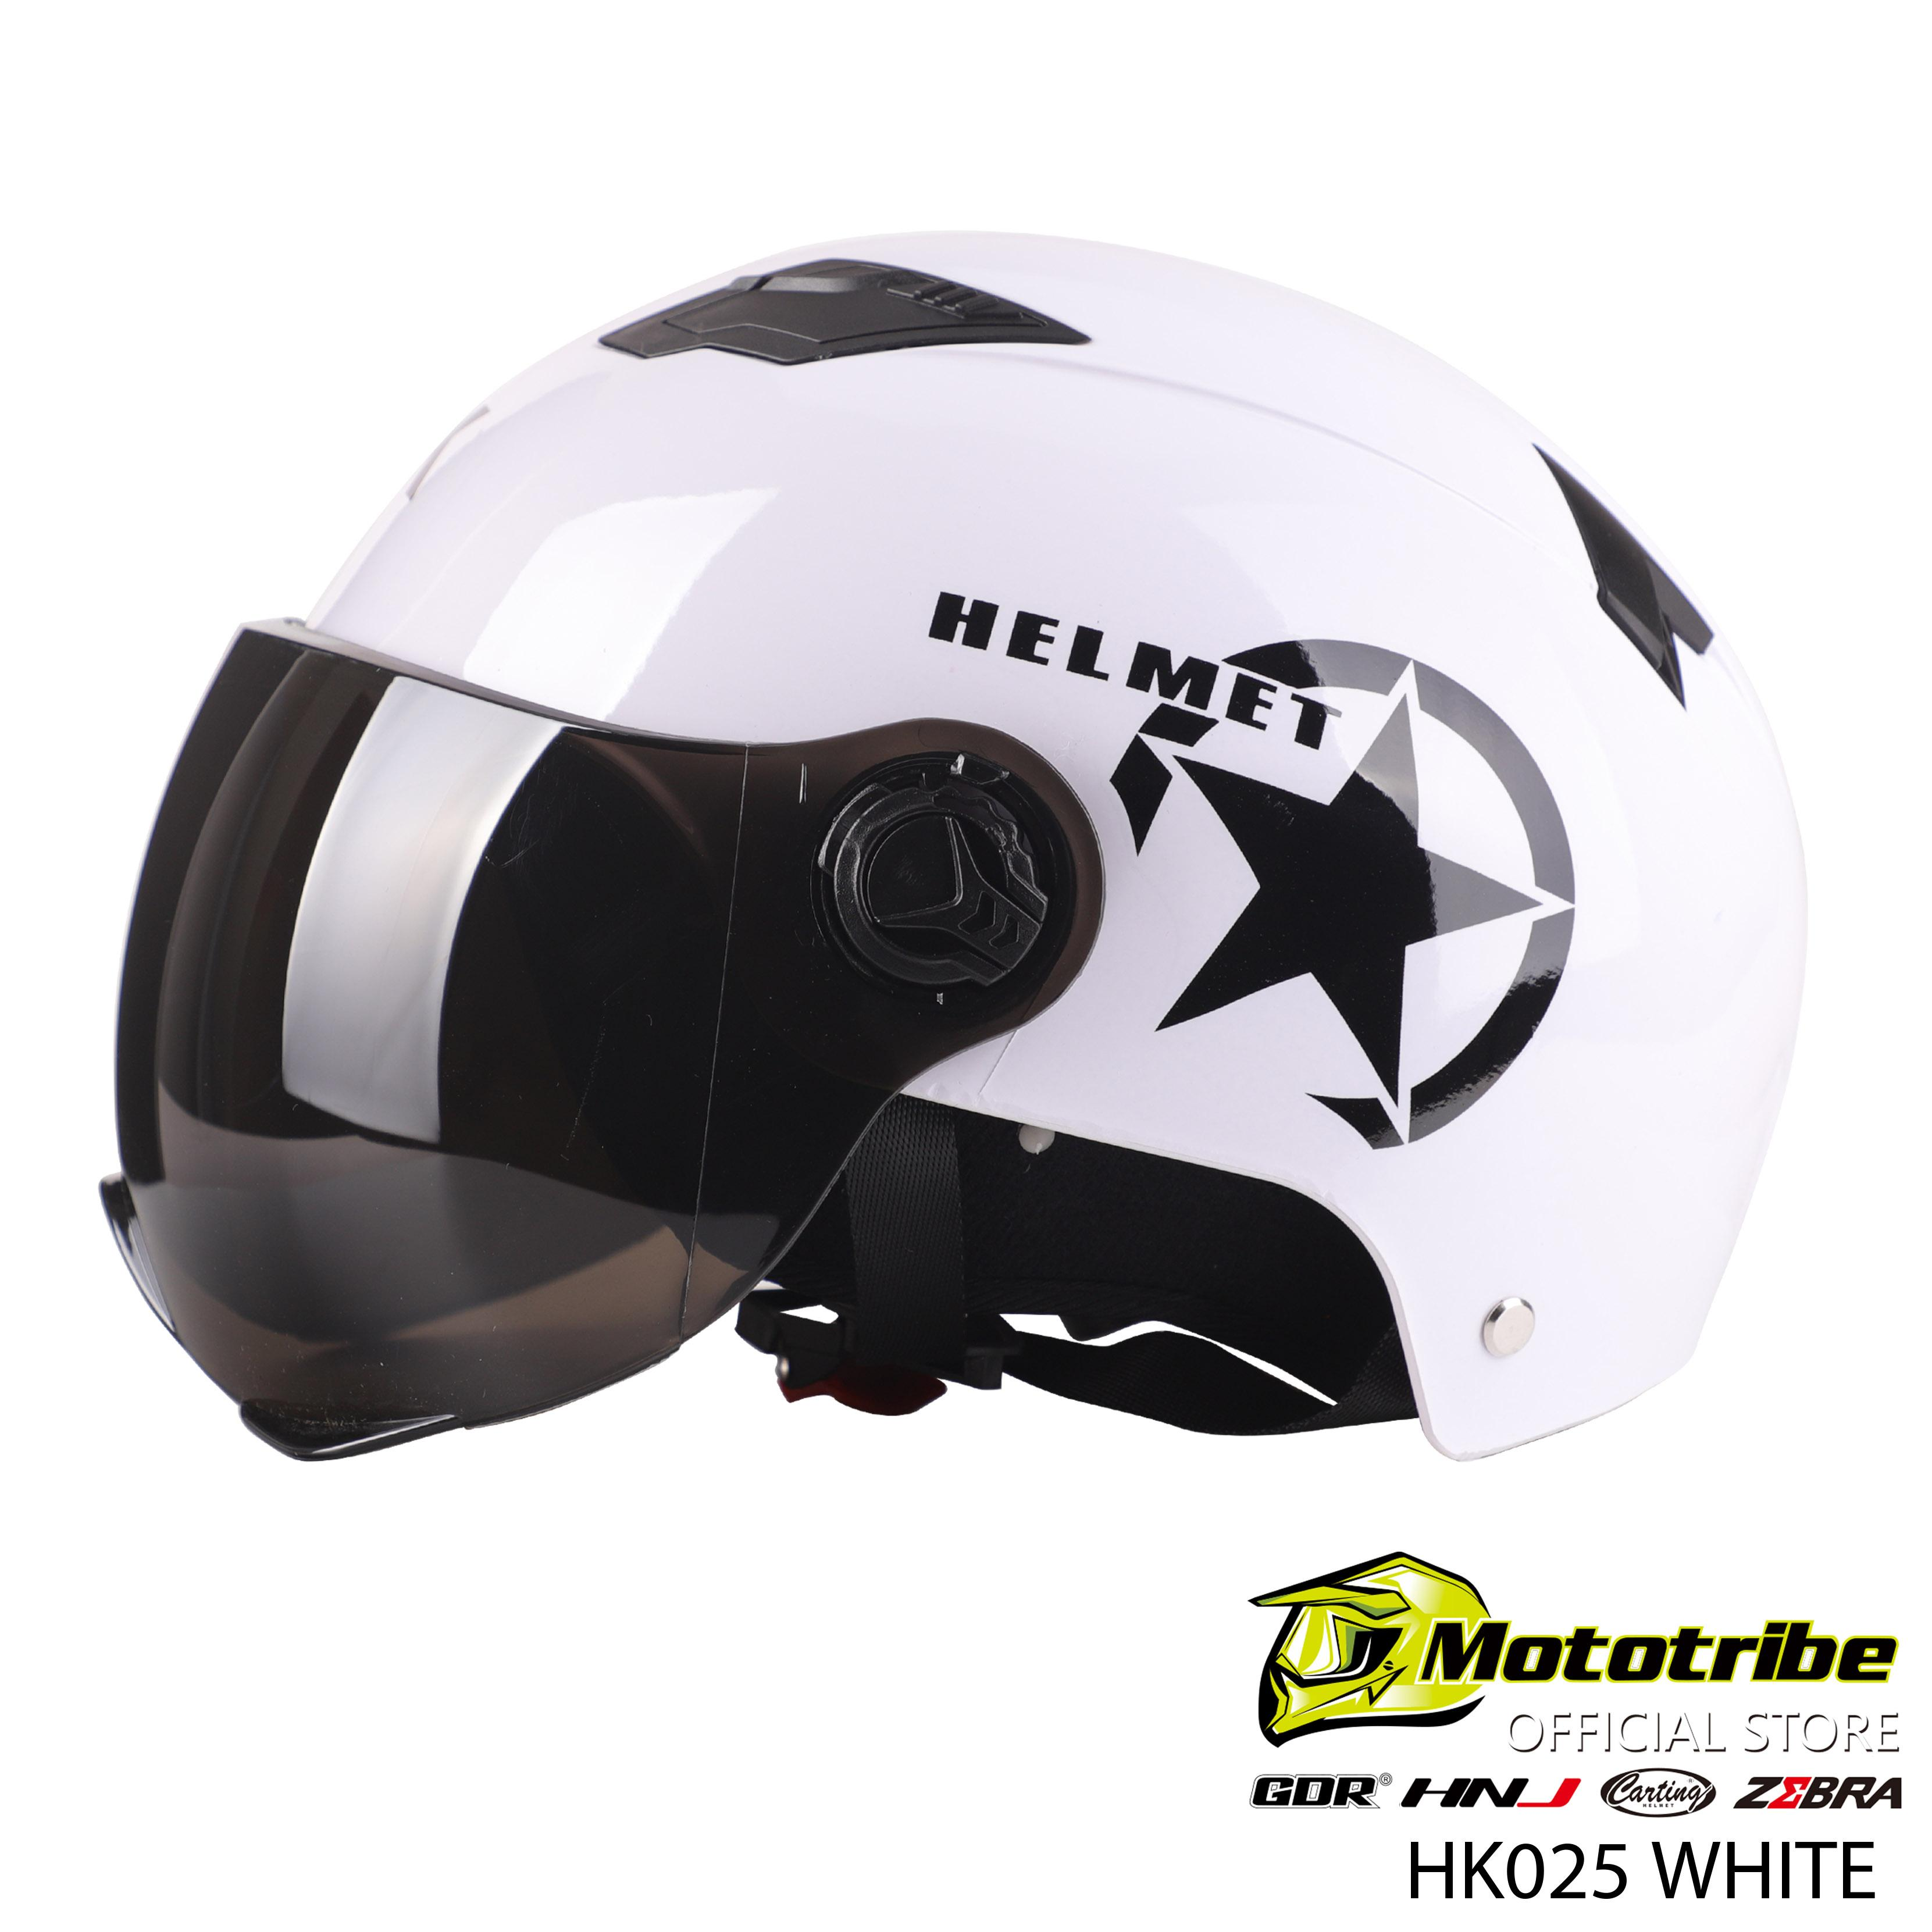 cbc832edbbb Helmets for sale - Motorcycle Helmets Online Deals & Prices in ...